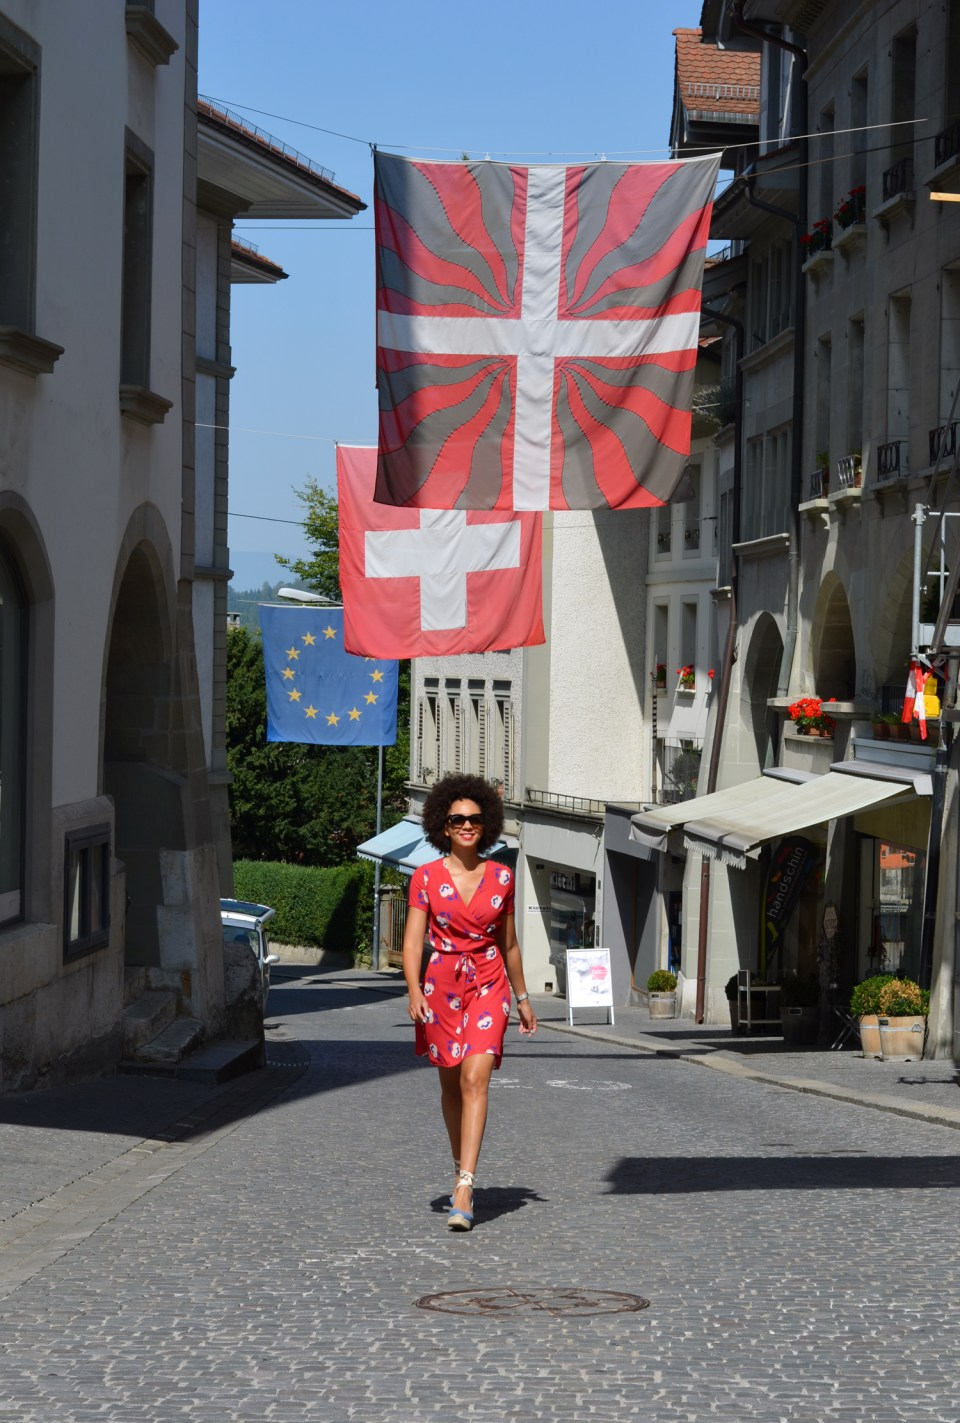 mercredie-blog-blogger-geneve-suisse-voyage-my-switzerland-grand-tour-roadtrip-europcar-accor-berthoud